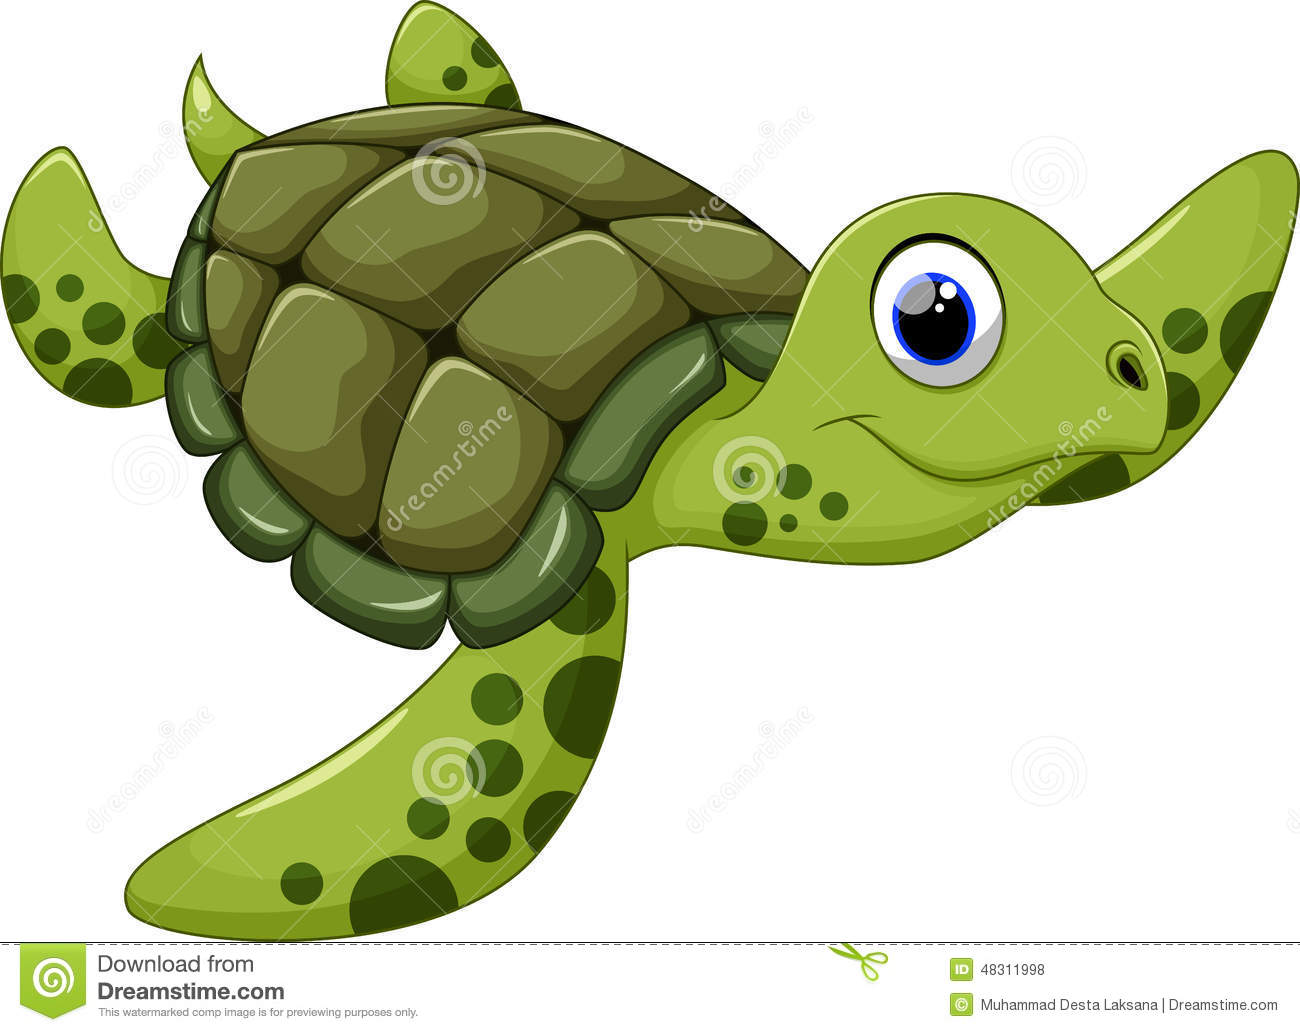 Cute Sea Turtle Cartoon Stock Illustration. Image Of